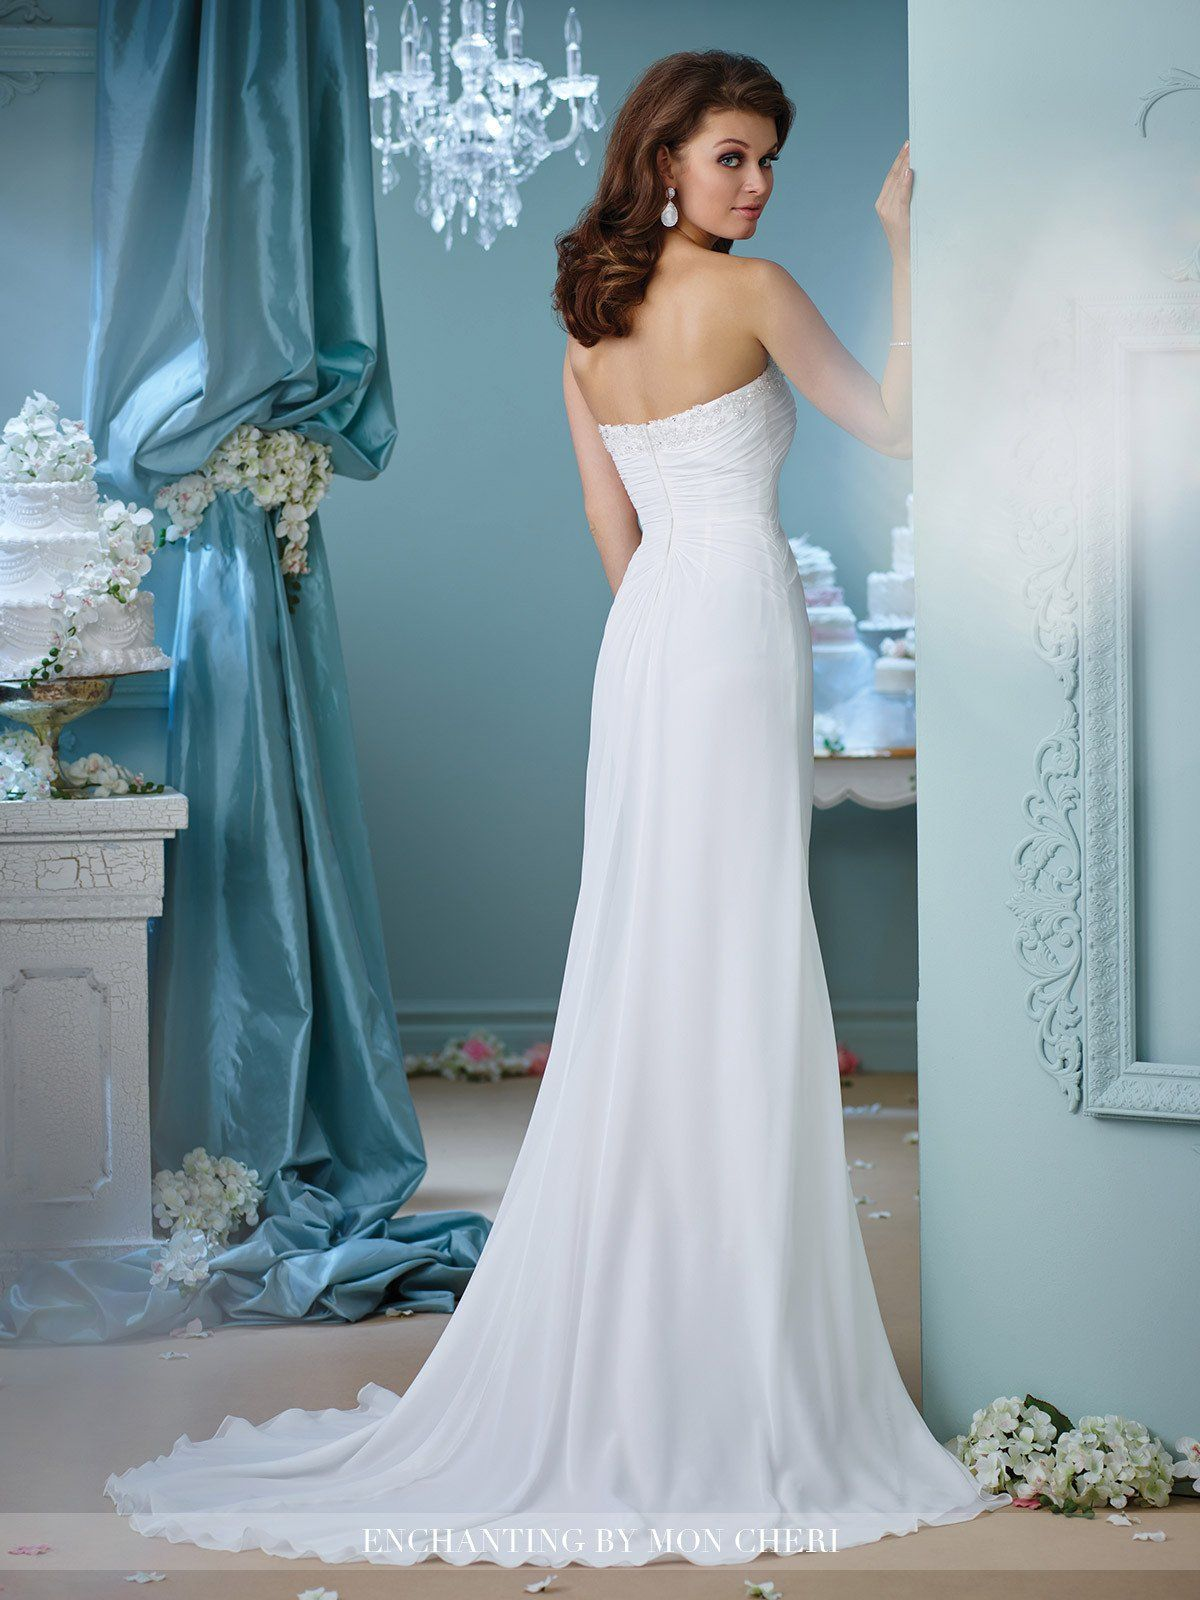 Enchanting - 216162 - All Dressed Up, Bridal Gown | Enchanted ...